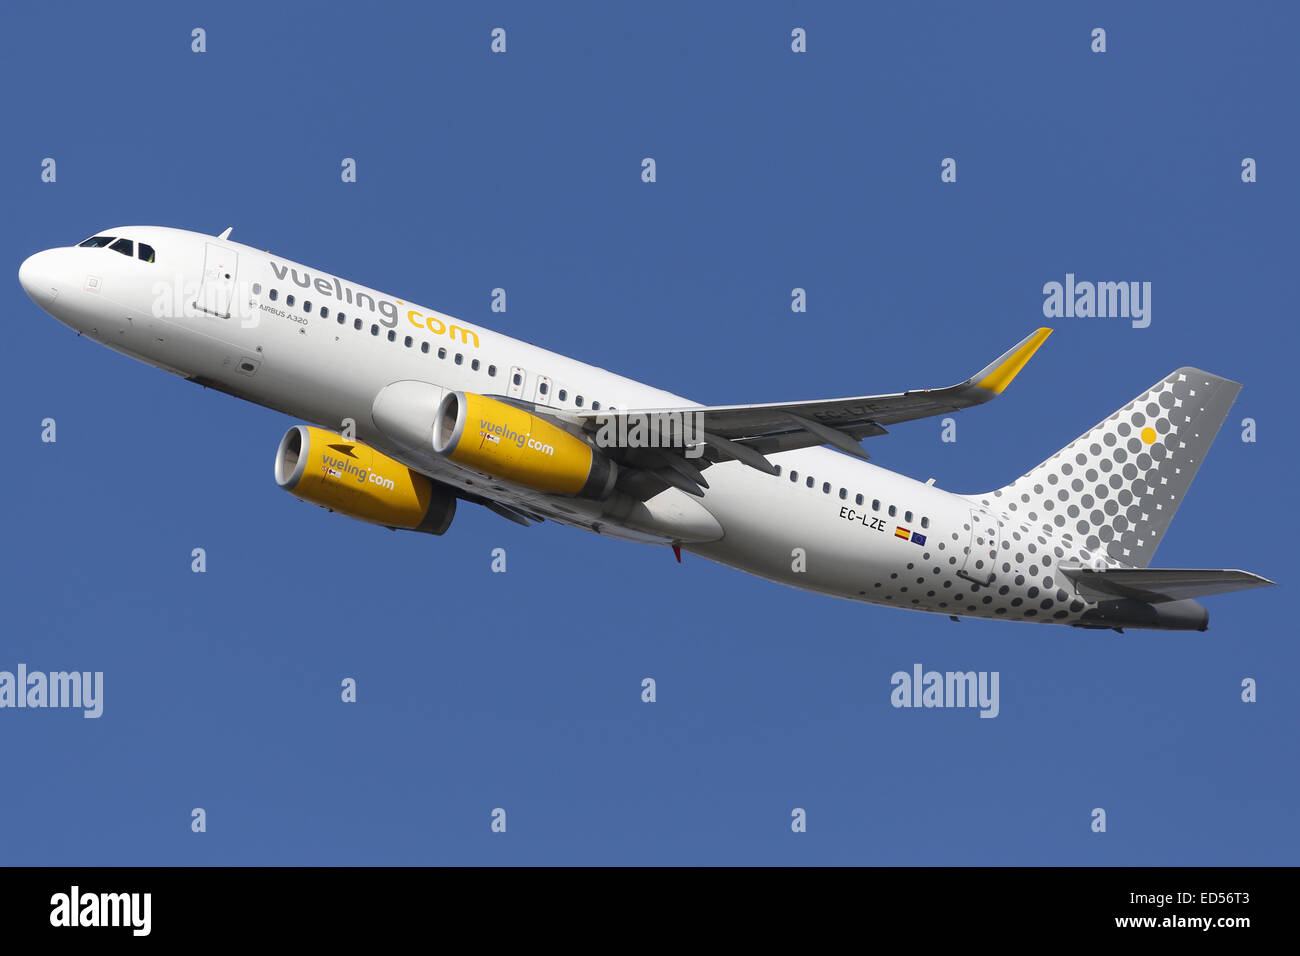 Barcelona, Spain - December 12, 2014: A Vueling Airbus A320 with the registration EC-LZE taking off from Barcelona - Stock Image